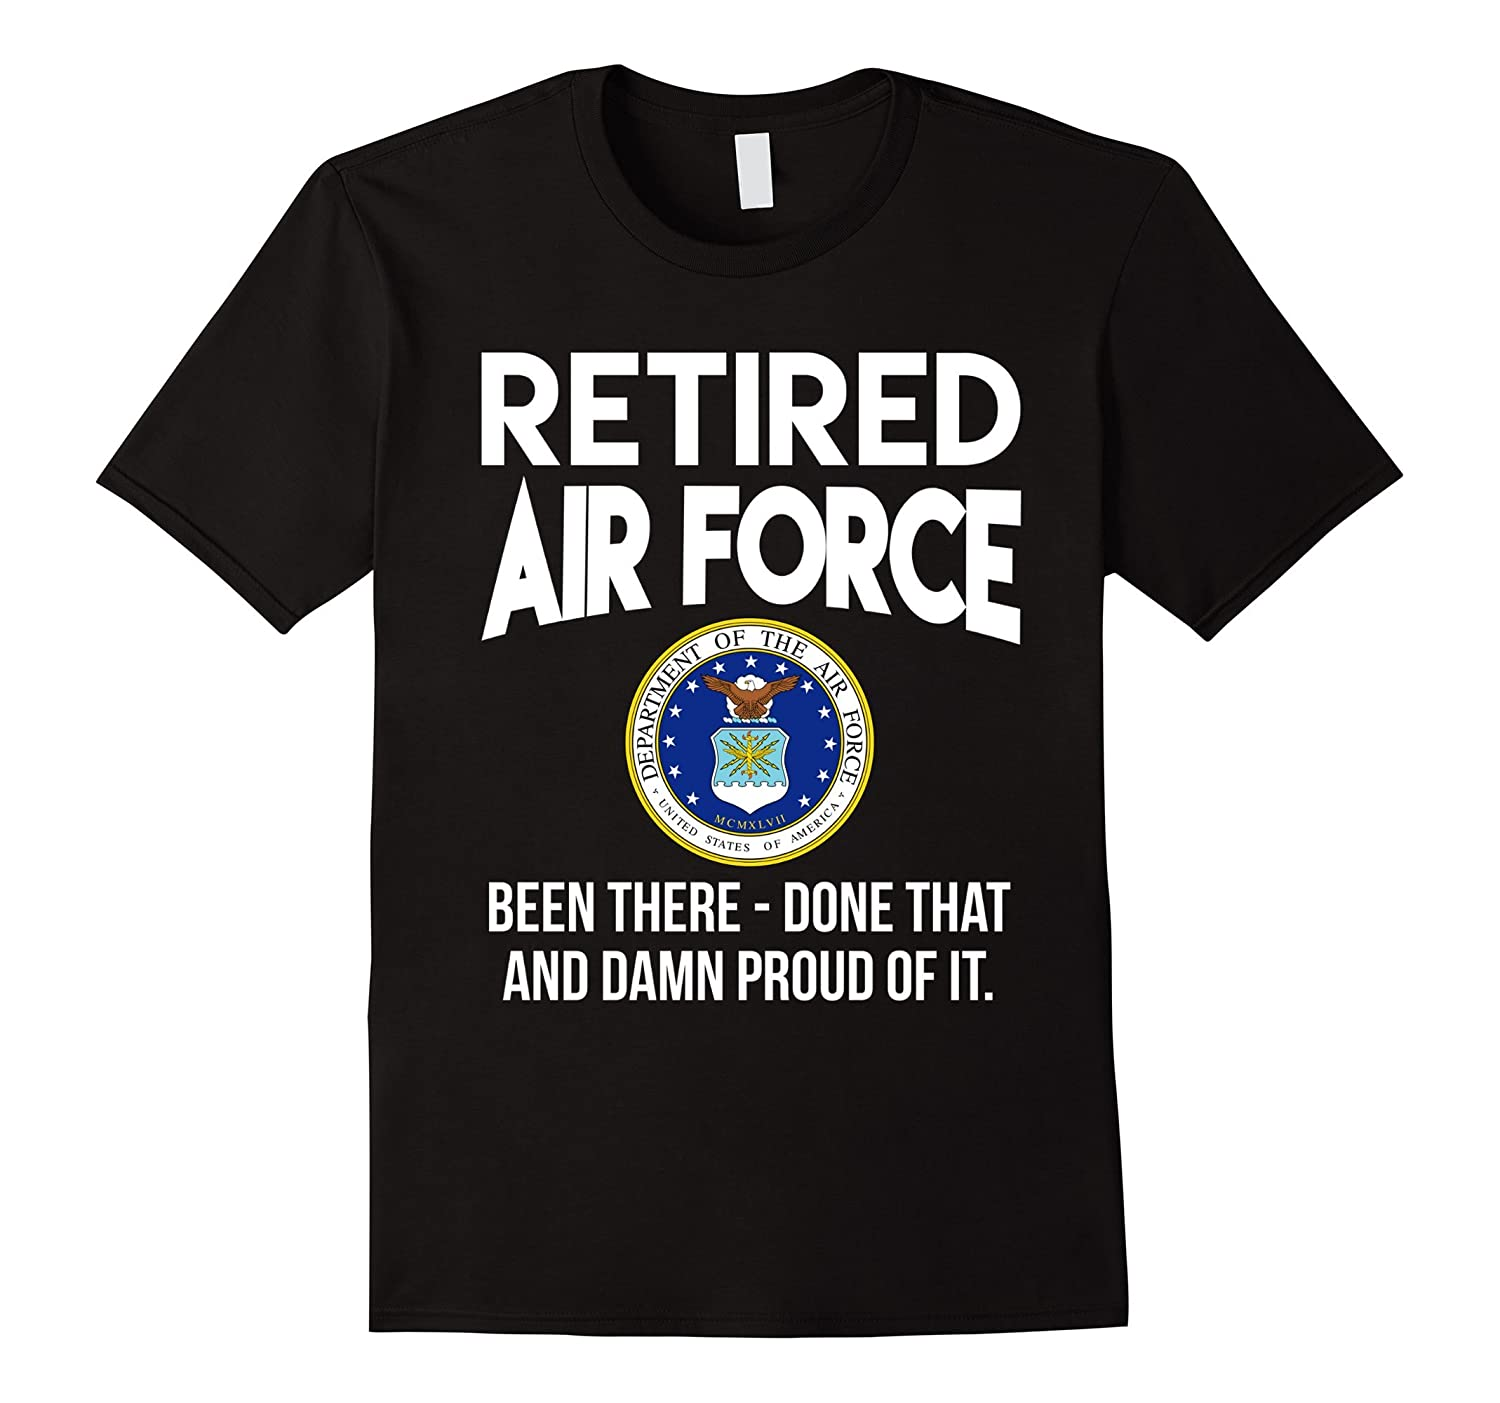 Air force retired shirt – Army retired shirt